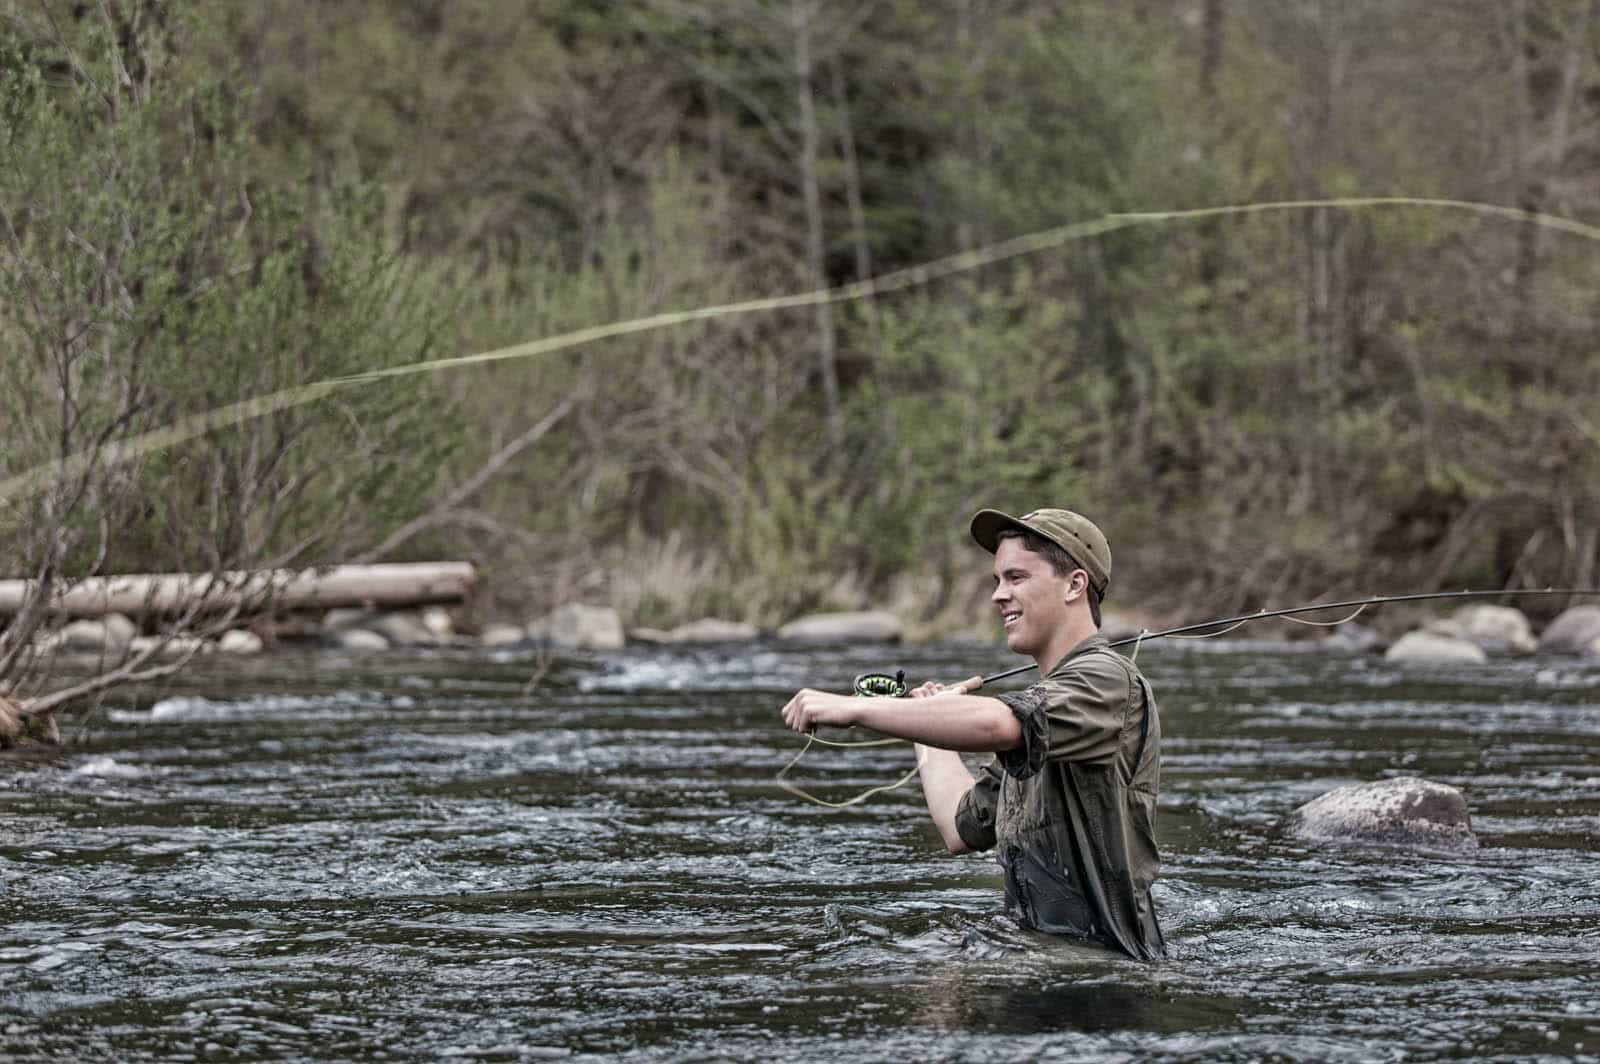 A fly fisherman fishing on the Feather River in Northern California.